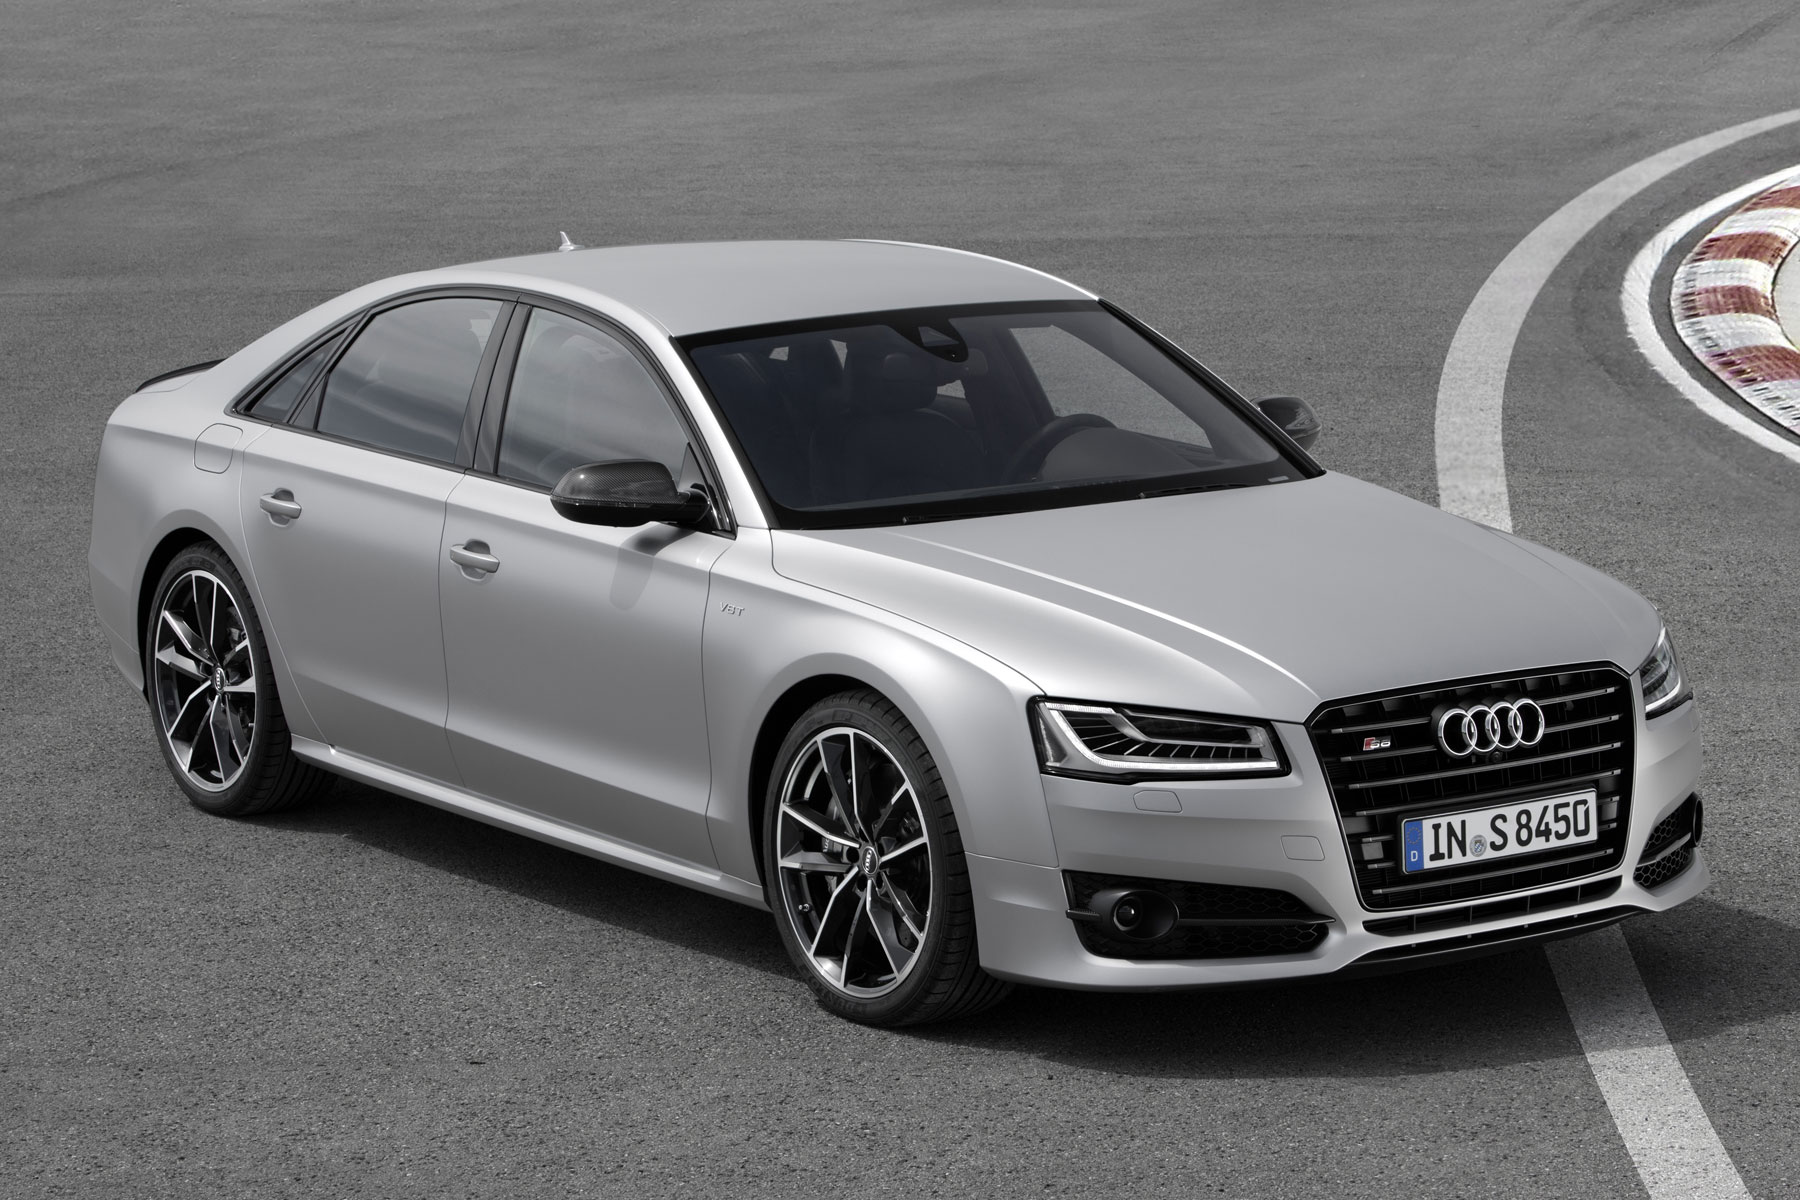 Audi reveals 605hp S8 Plus that'll hit 62mph in 3.8 seconds